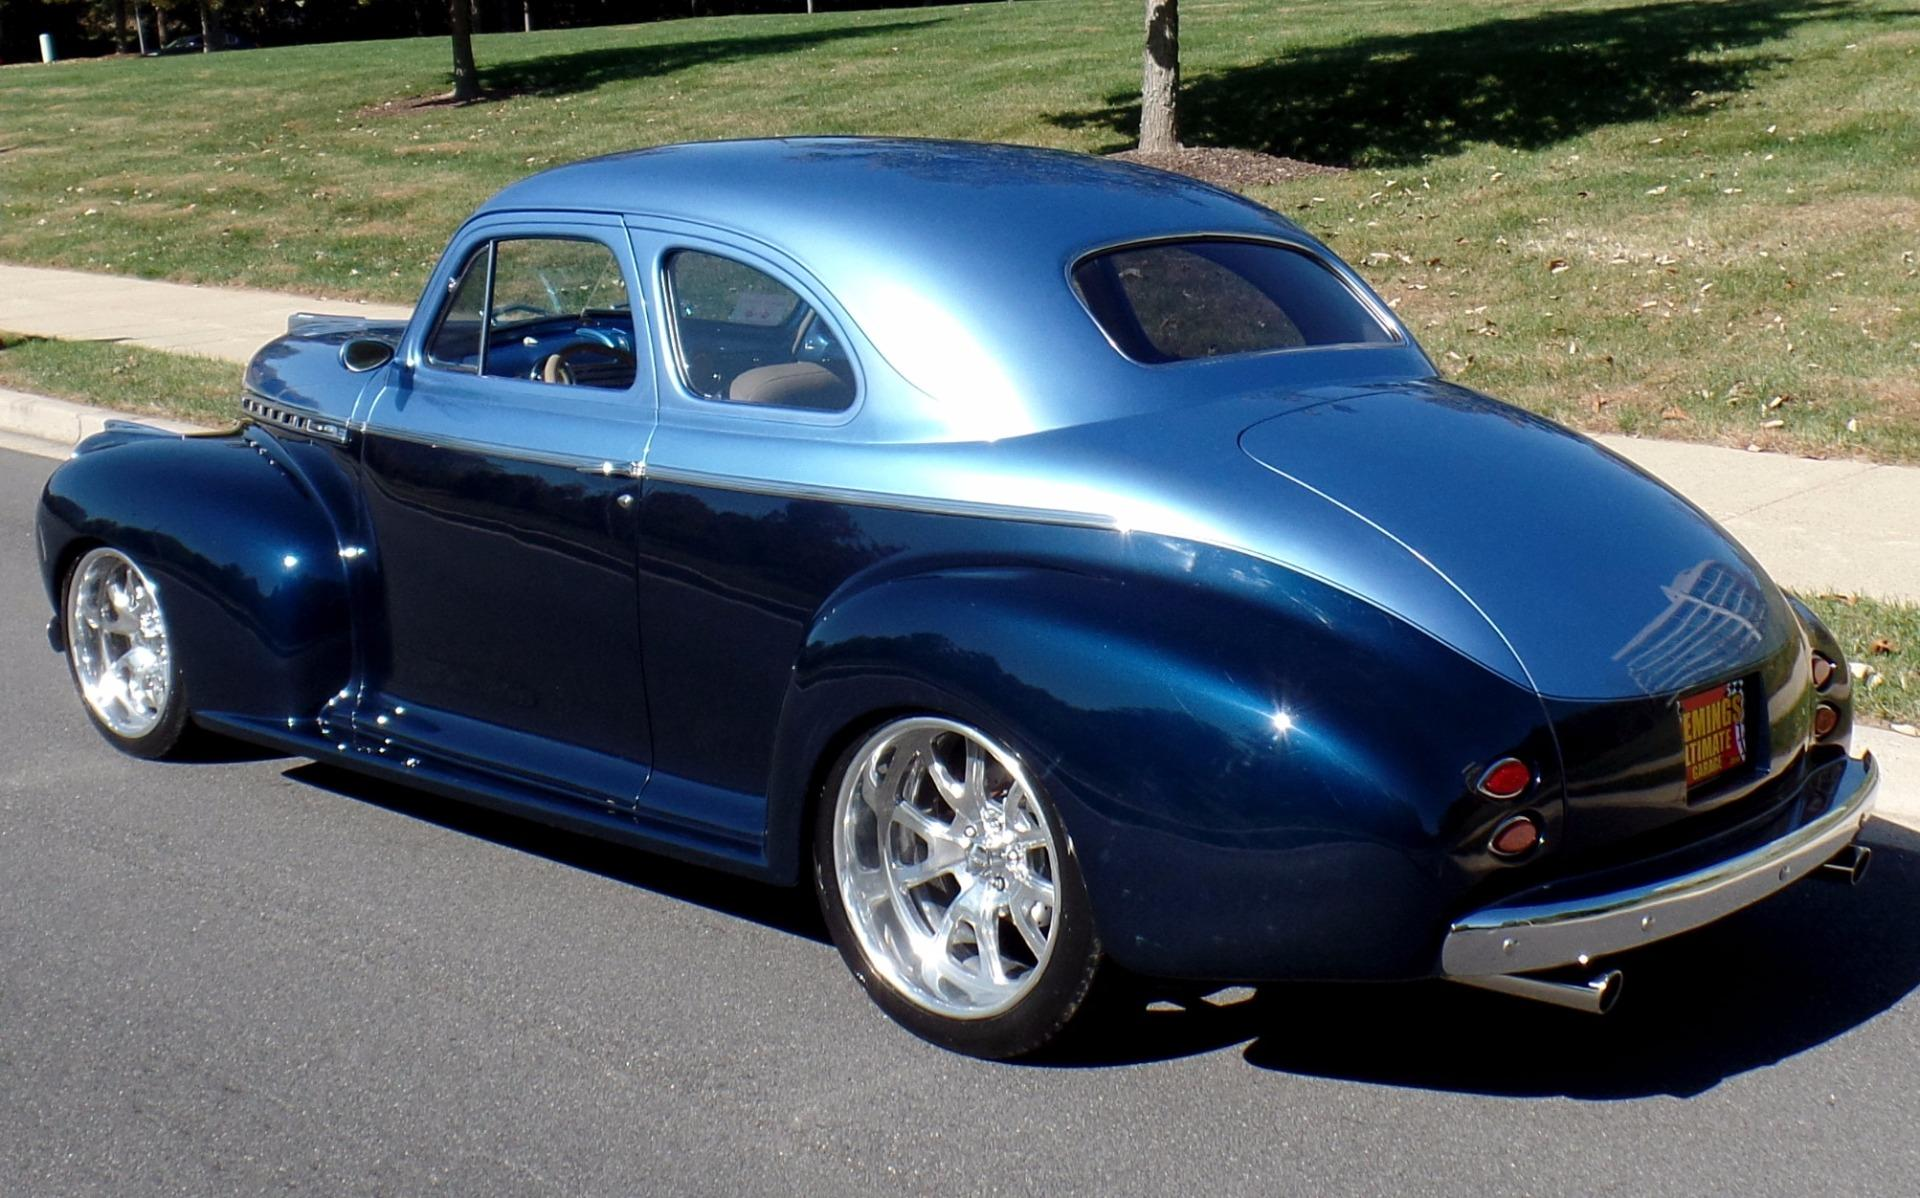 Gm 700r4 Transmission >> 1941 Chevrolet Sedan Delivery Pro Touring Custom Coupe